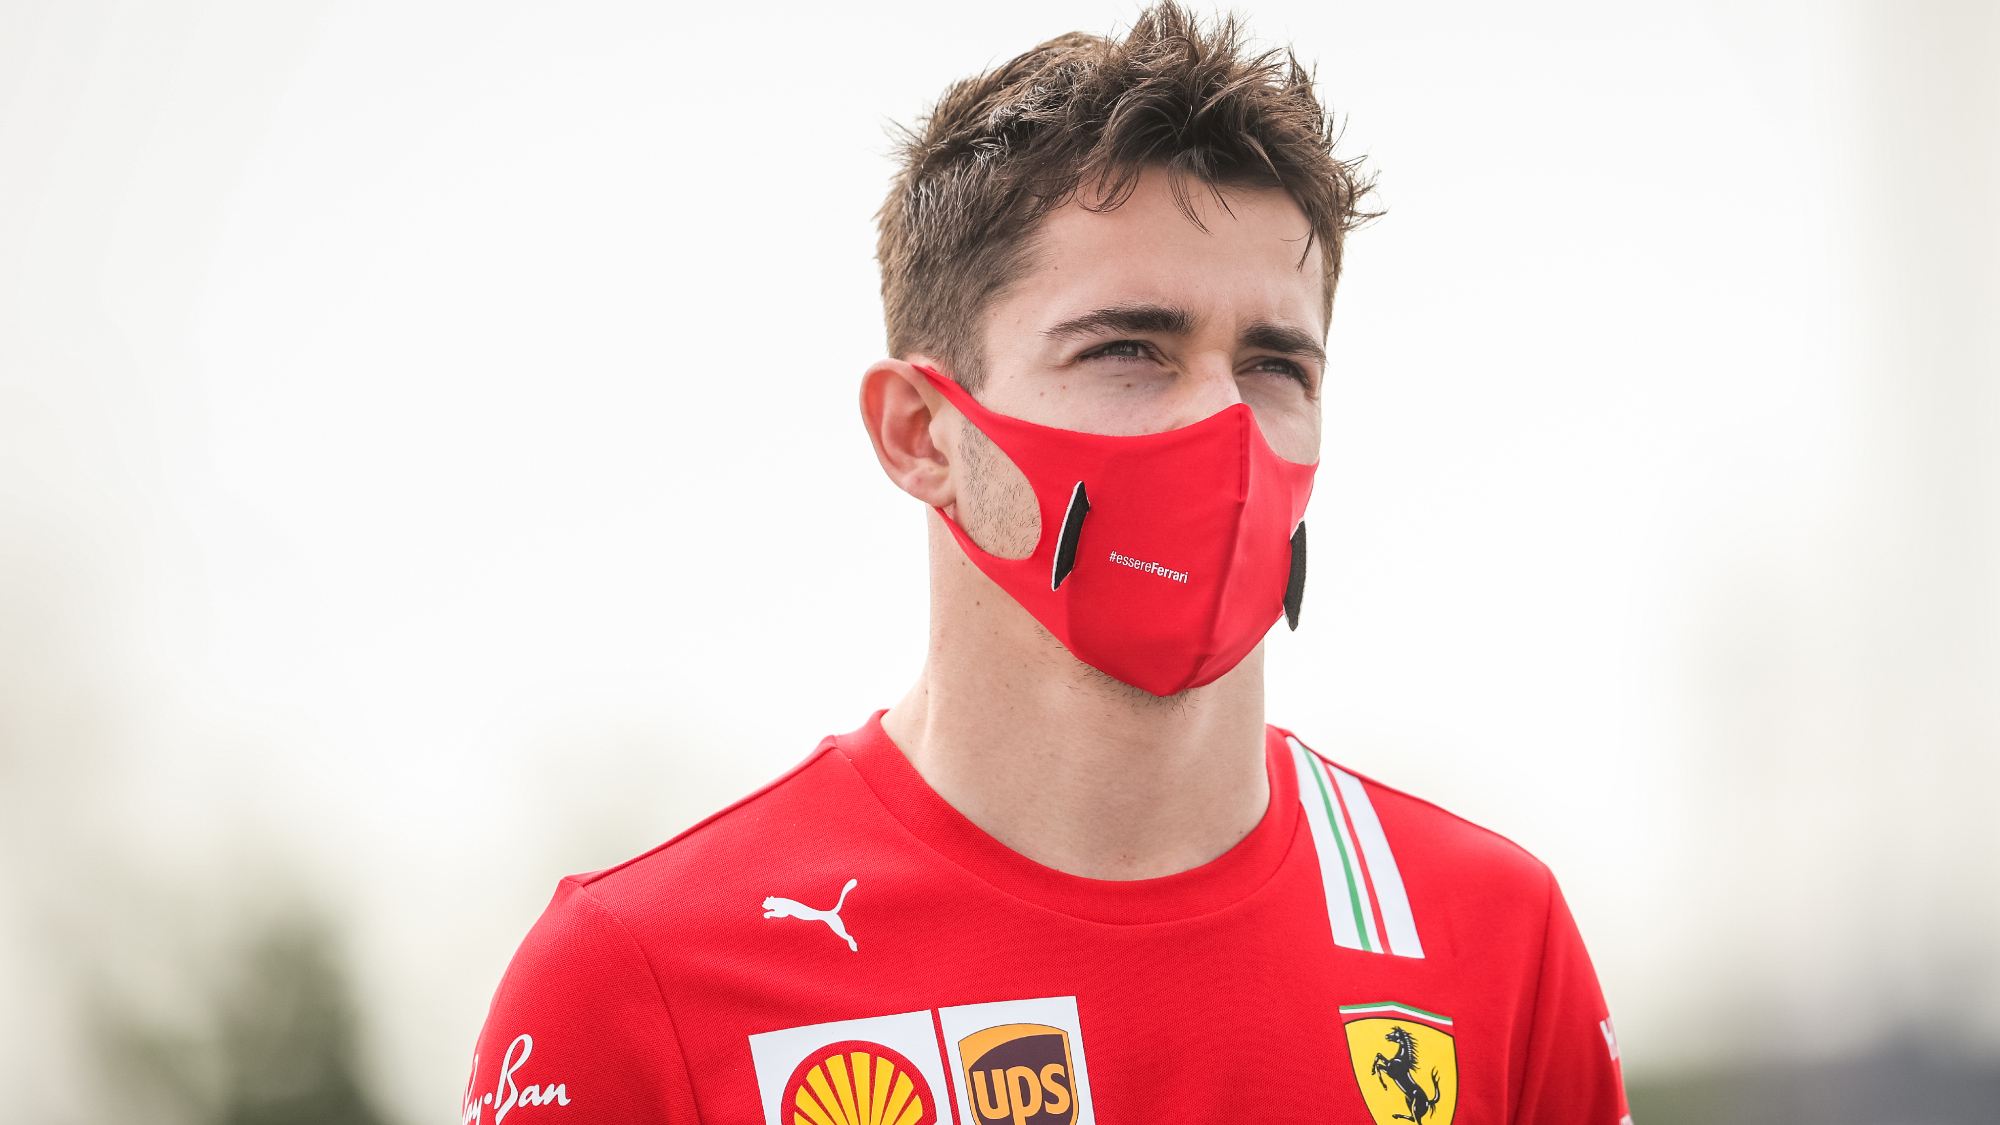 Charles Leclerc tests positive for Covid-19